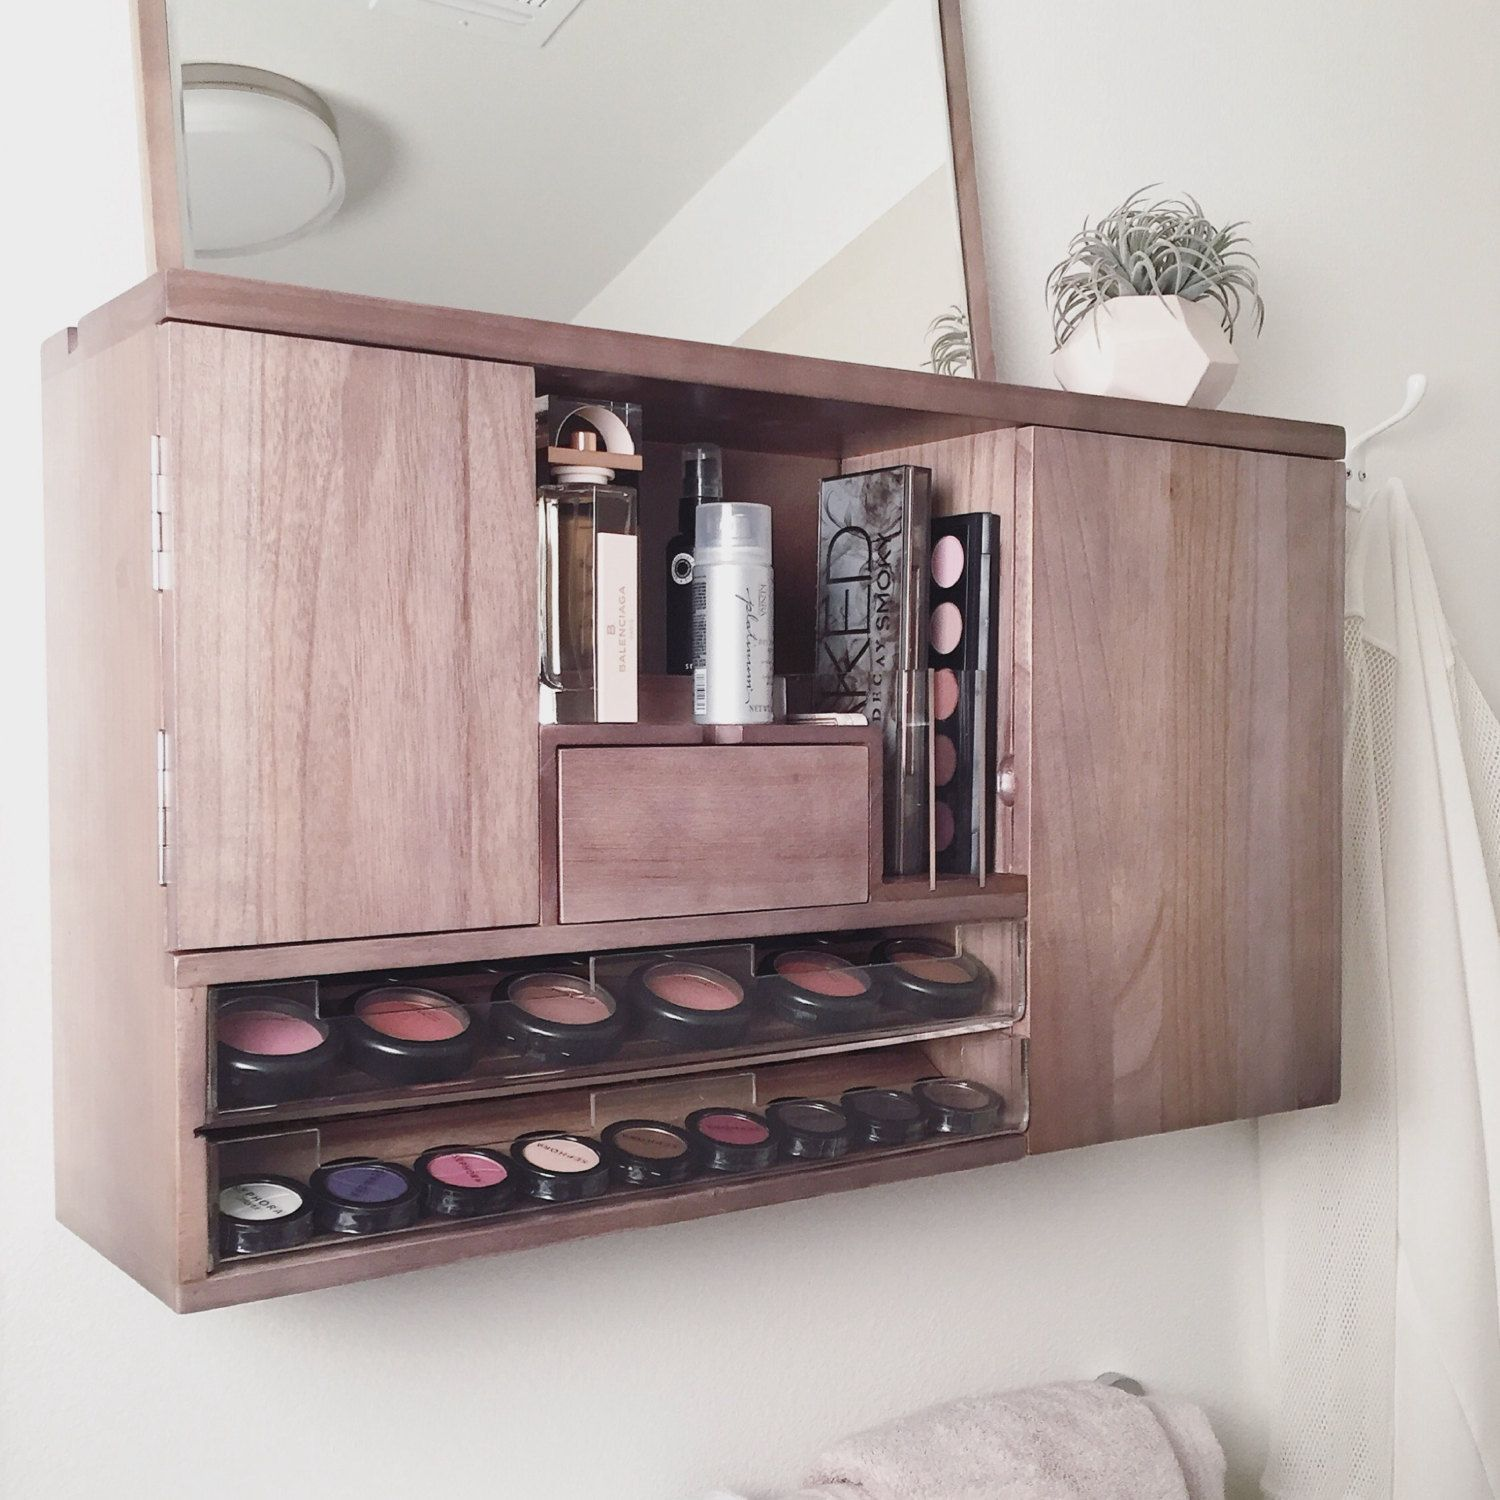 Wall Mounted Makeup Organizer Vanity 249.00 Usd